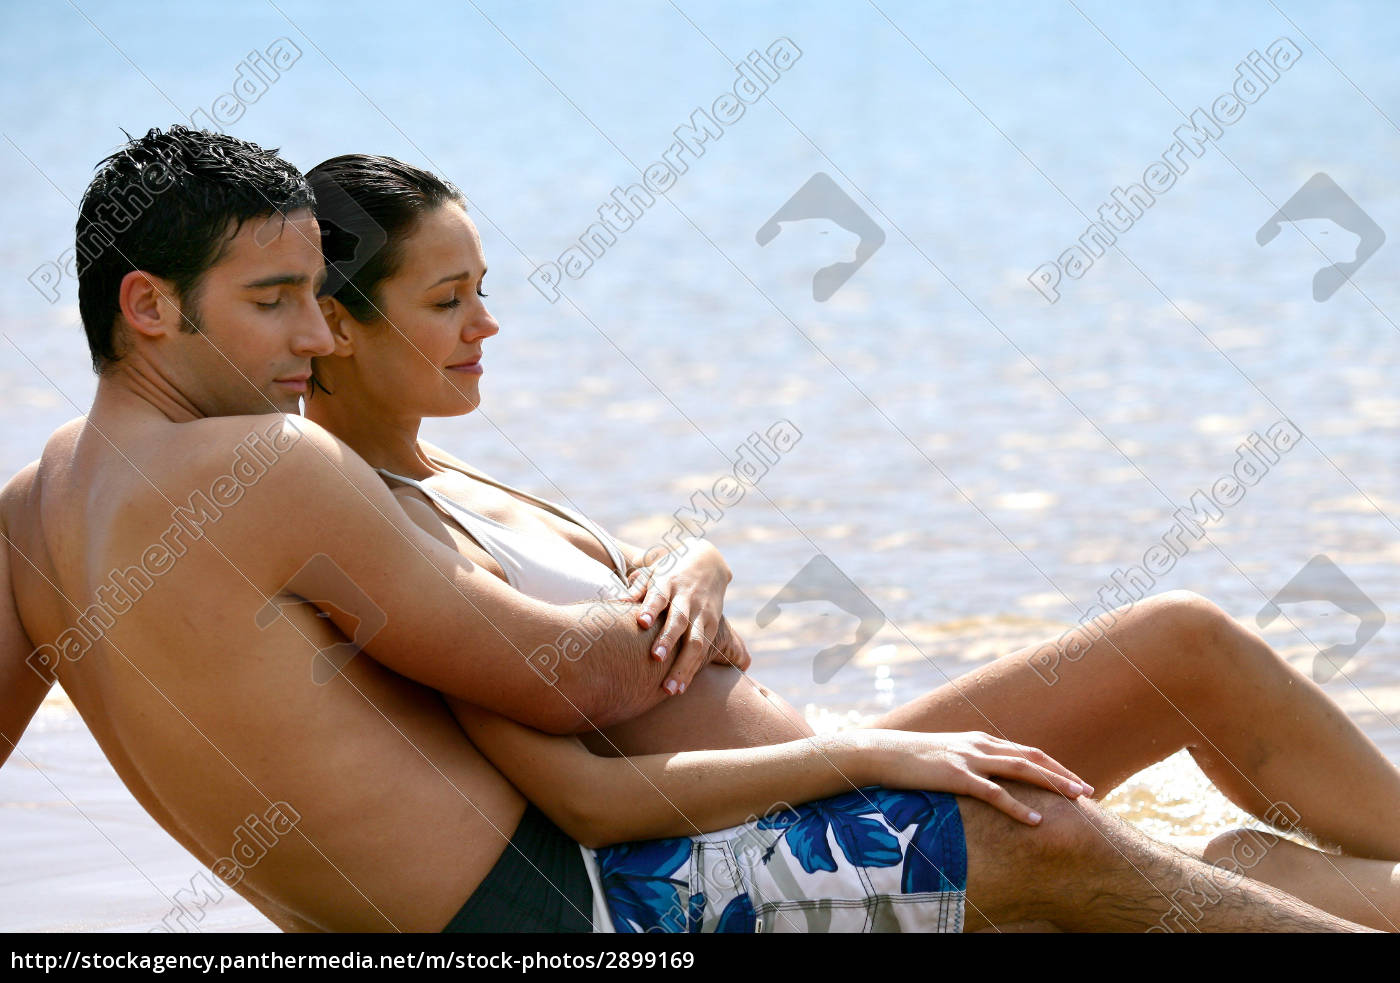 woman, profile, relaxation, holiday, vacation, holidays - 2899169